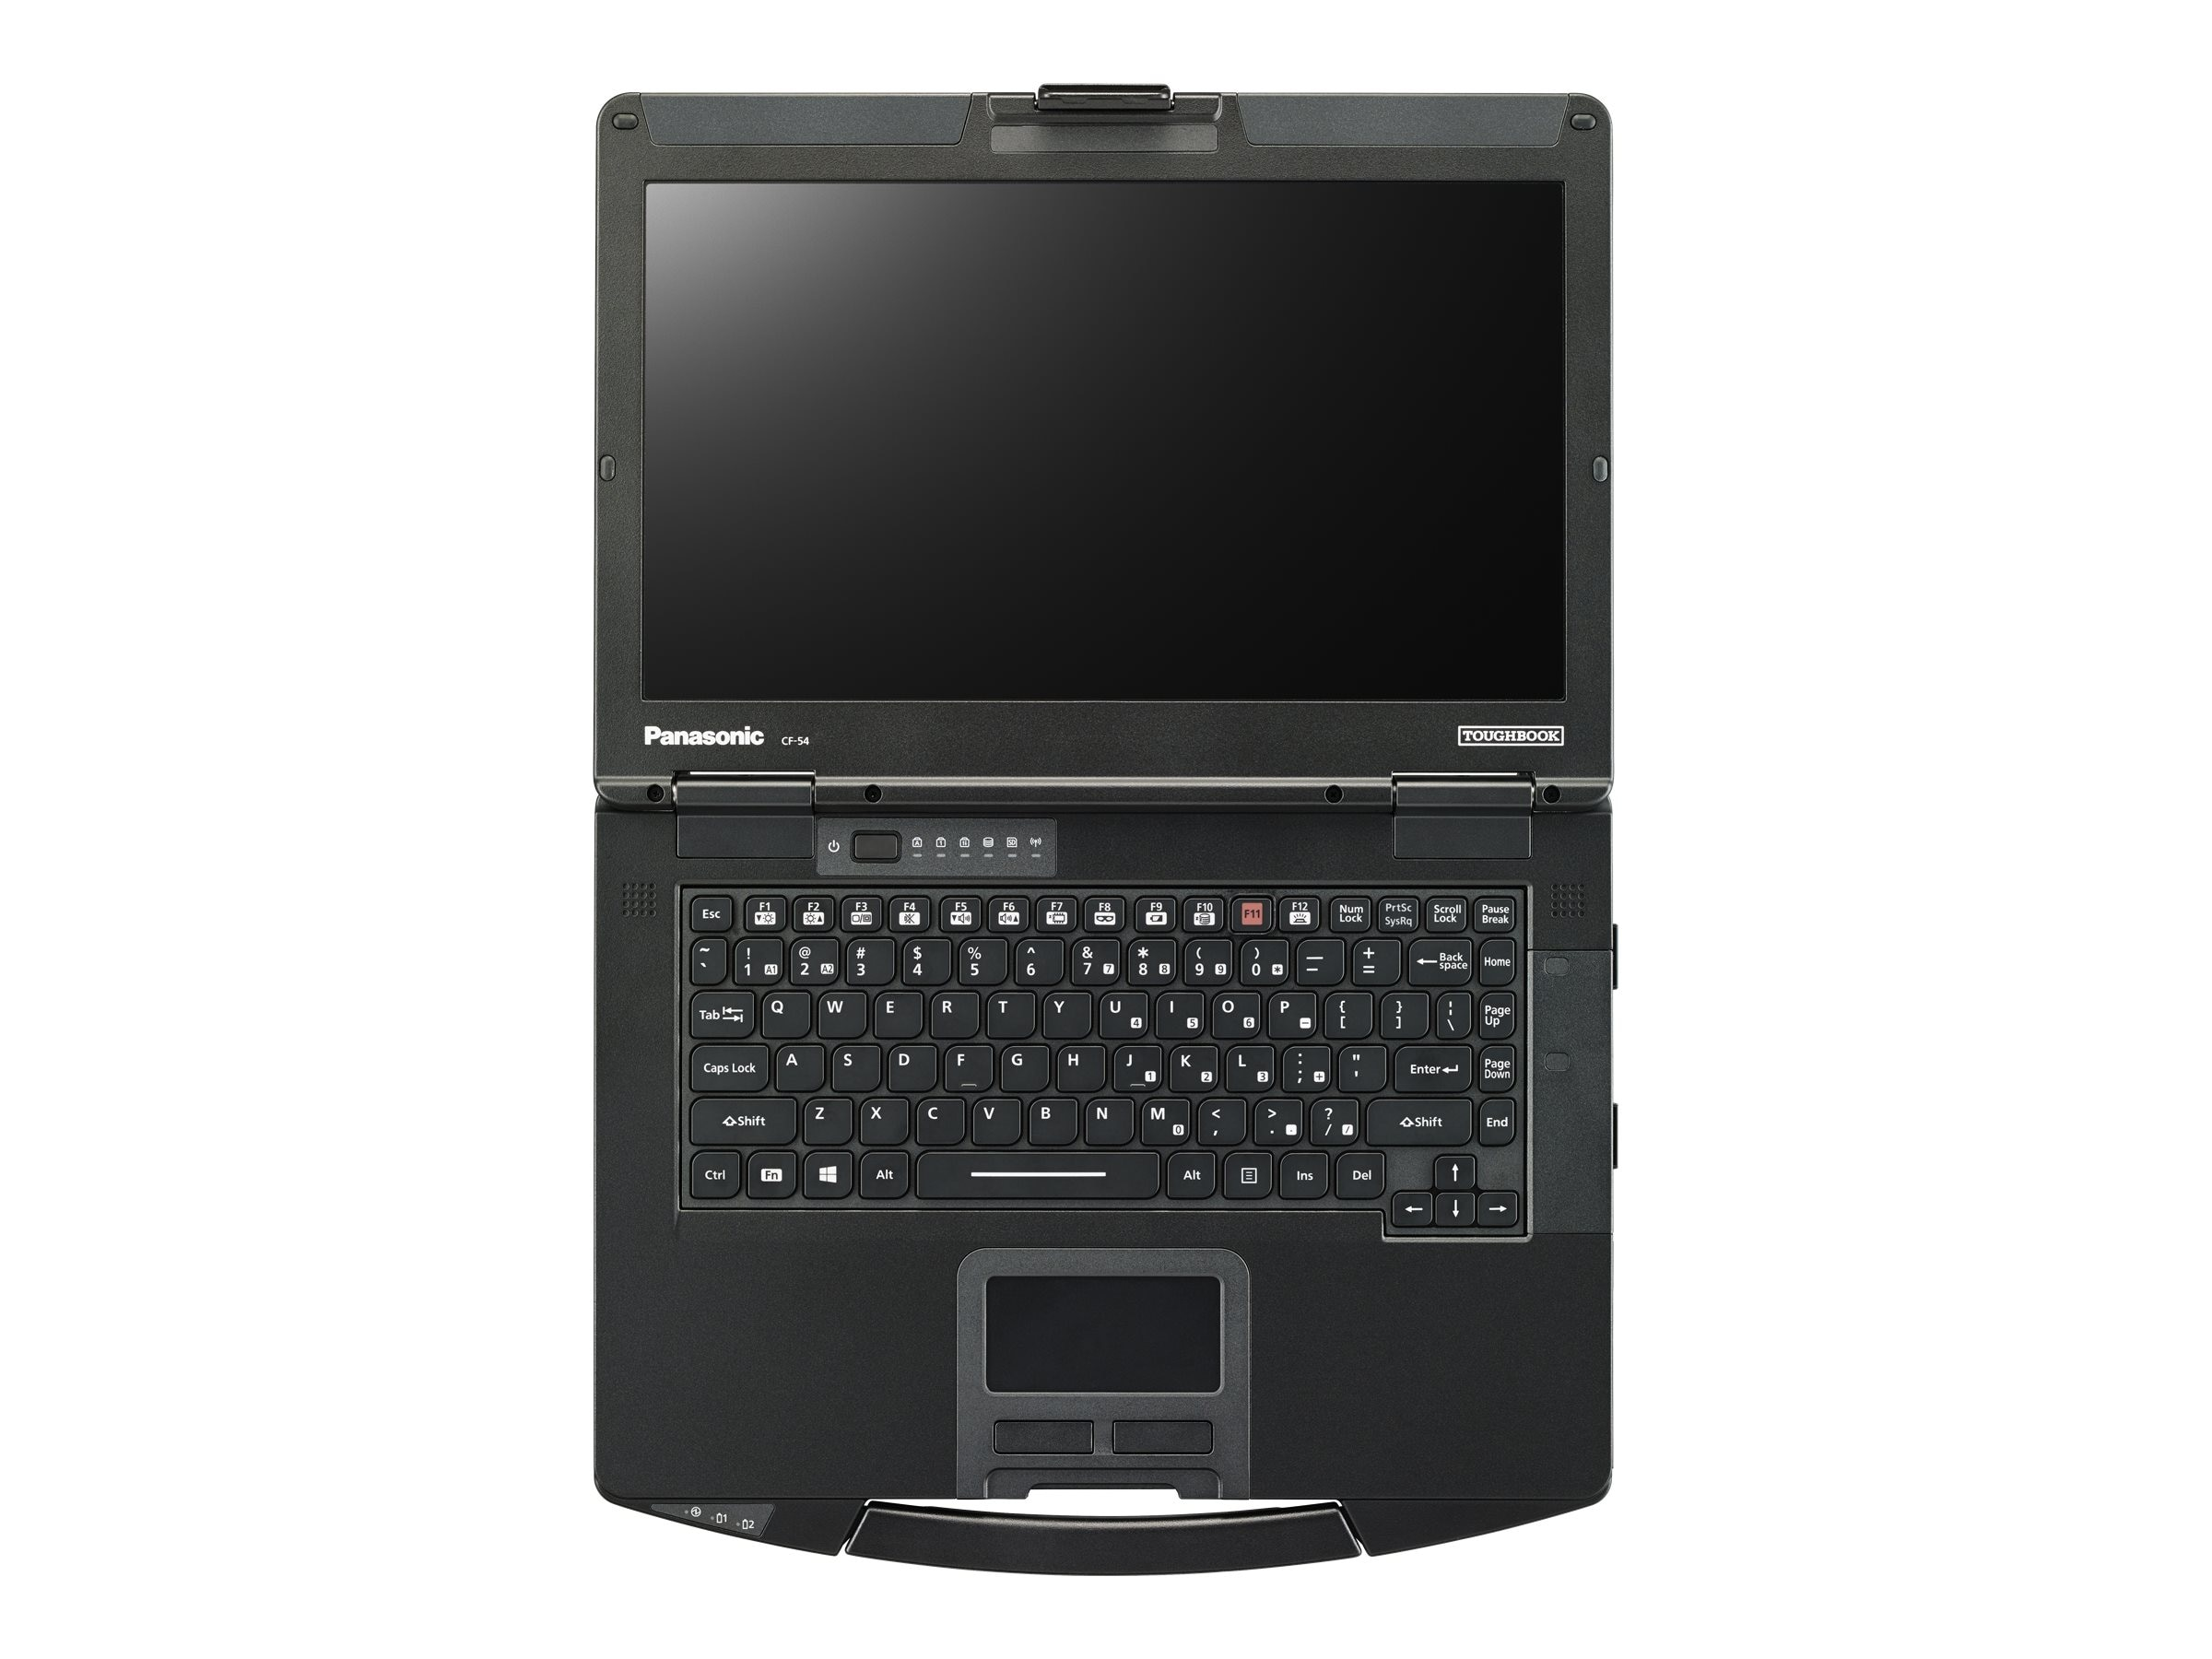 Panasonic Toughbook 54 2.4GHz Core i5 14in display, CF-54F4456VM